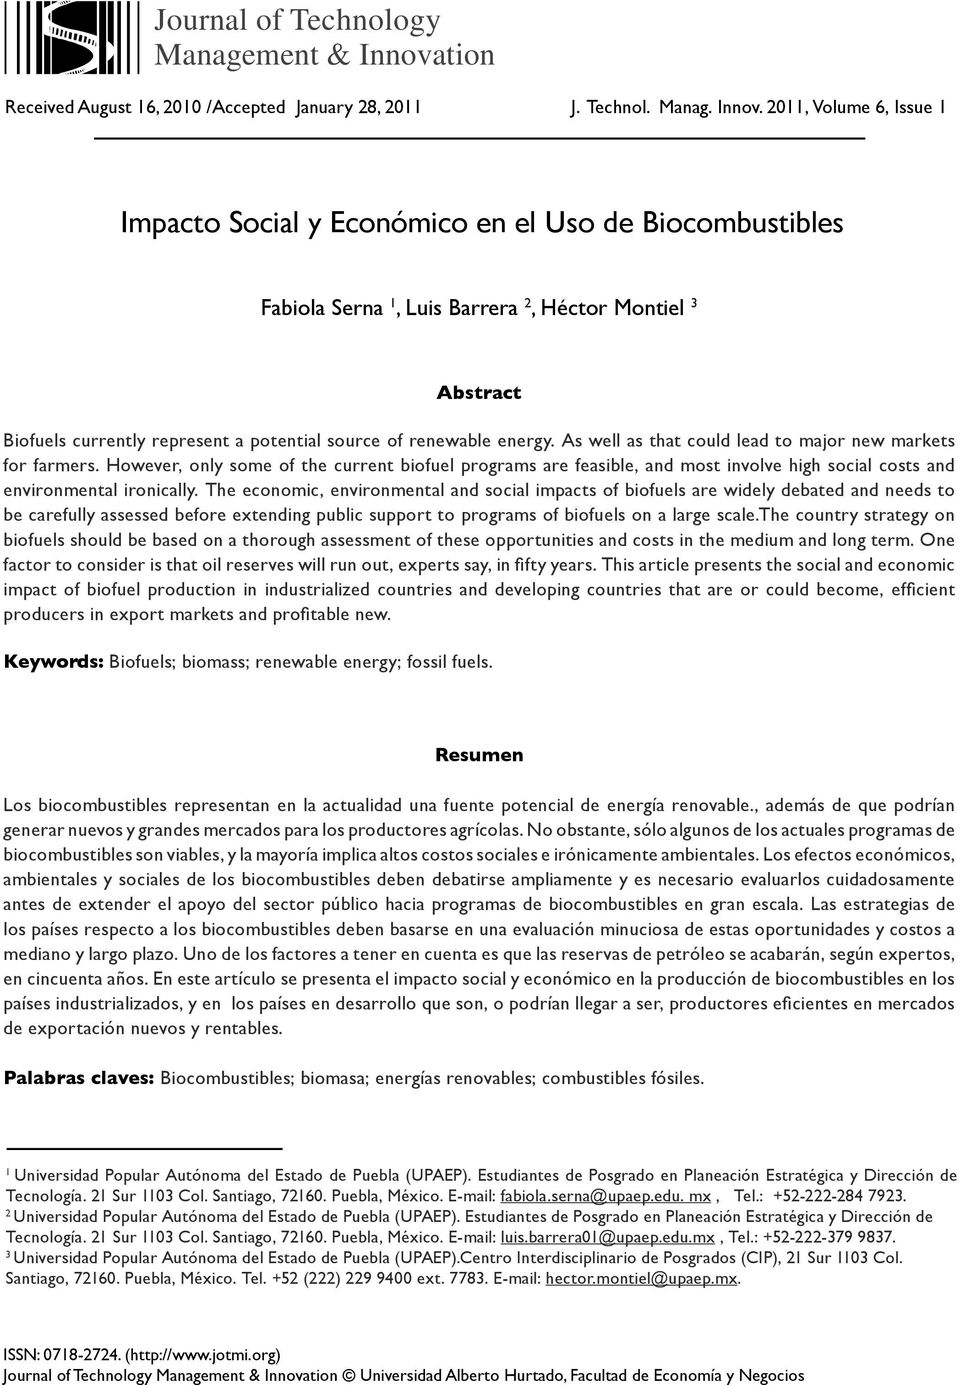 2011, Volume 6, Issue 1 Impacto Social y Económico en el Uso de Biocombustibles Fabiola Serna 1, Luis Barrera 2, Héctor Montiel 3 Abstract Biofuels currently represent a potential source of renewable